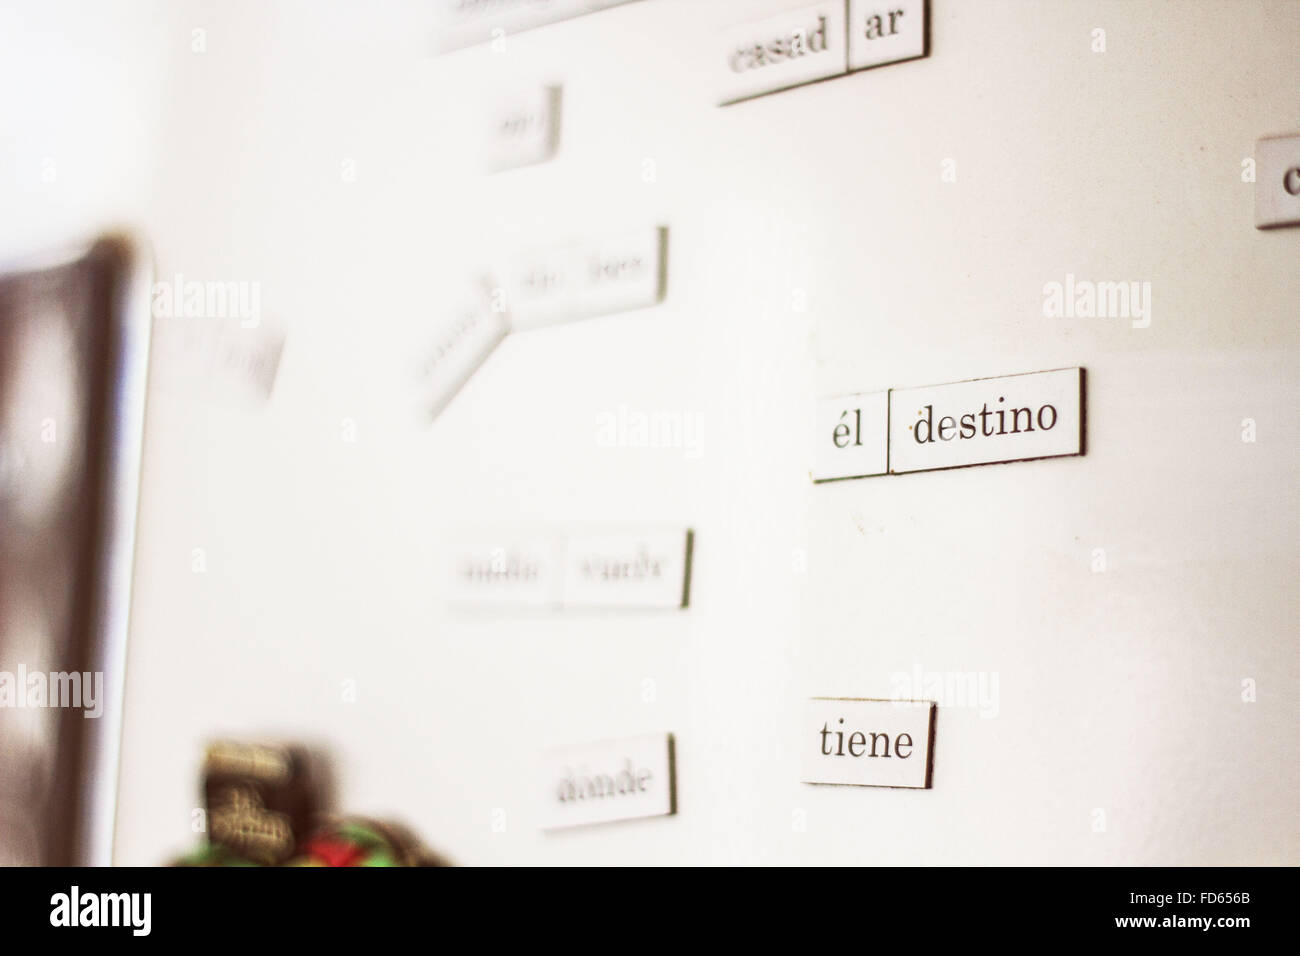 Nameplates With Spanish Words On Wall - Stock Image